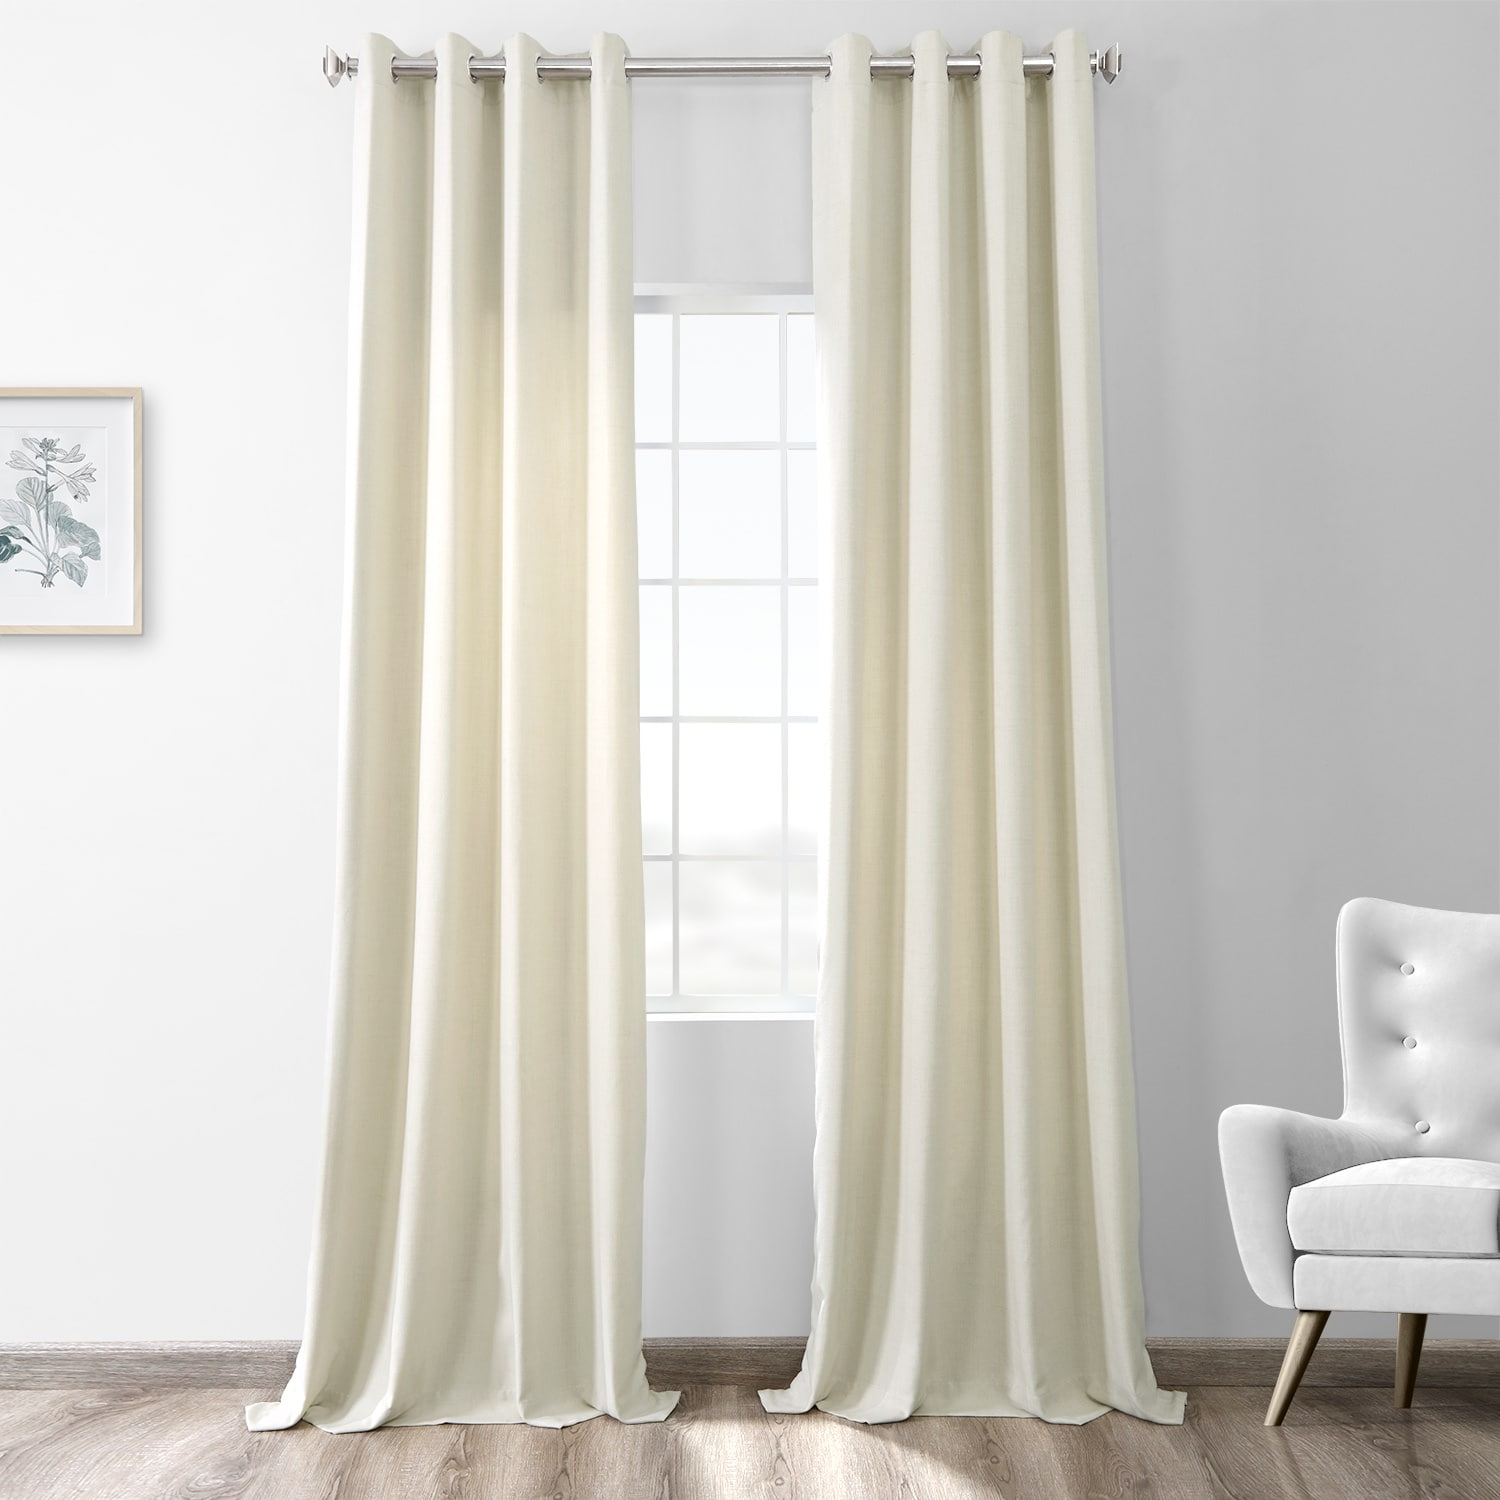 Creamy Ivory Thermal Room Darkening Heathered Italian Woolen Weave Grommet Curtain